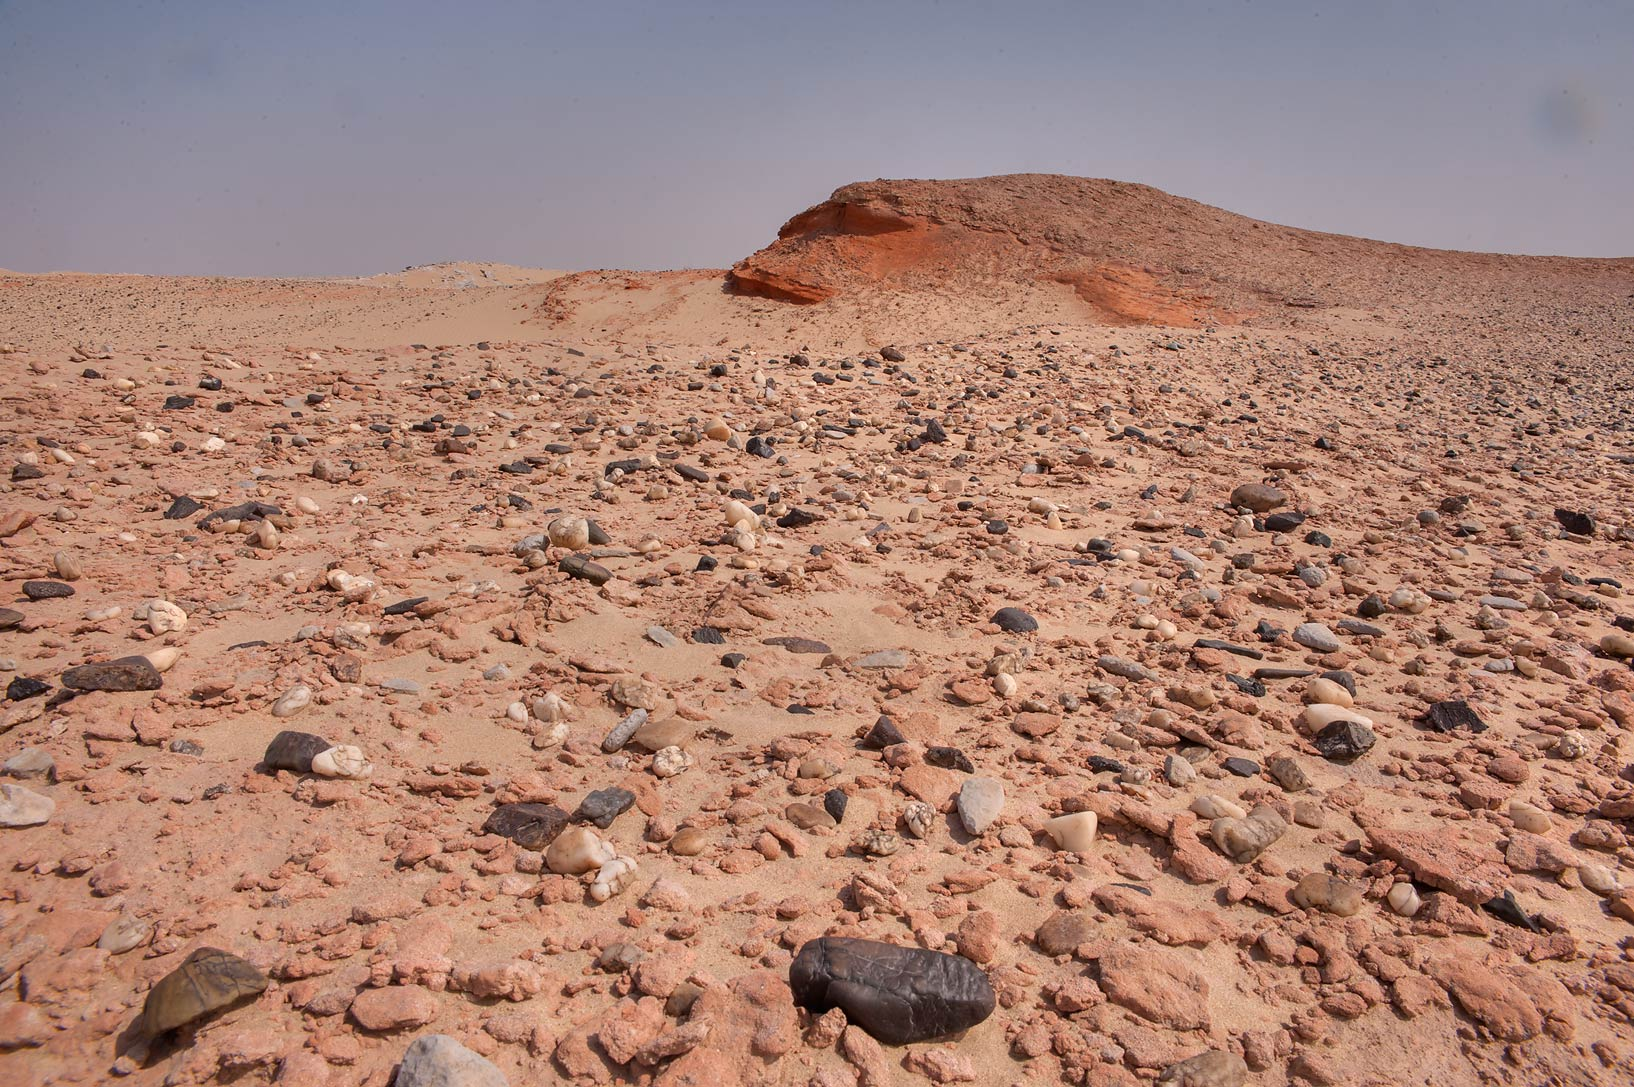 Pebbles covering lithified sand dune in area of Jebel Al-Nakhsh in south-western Qatar